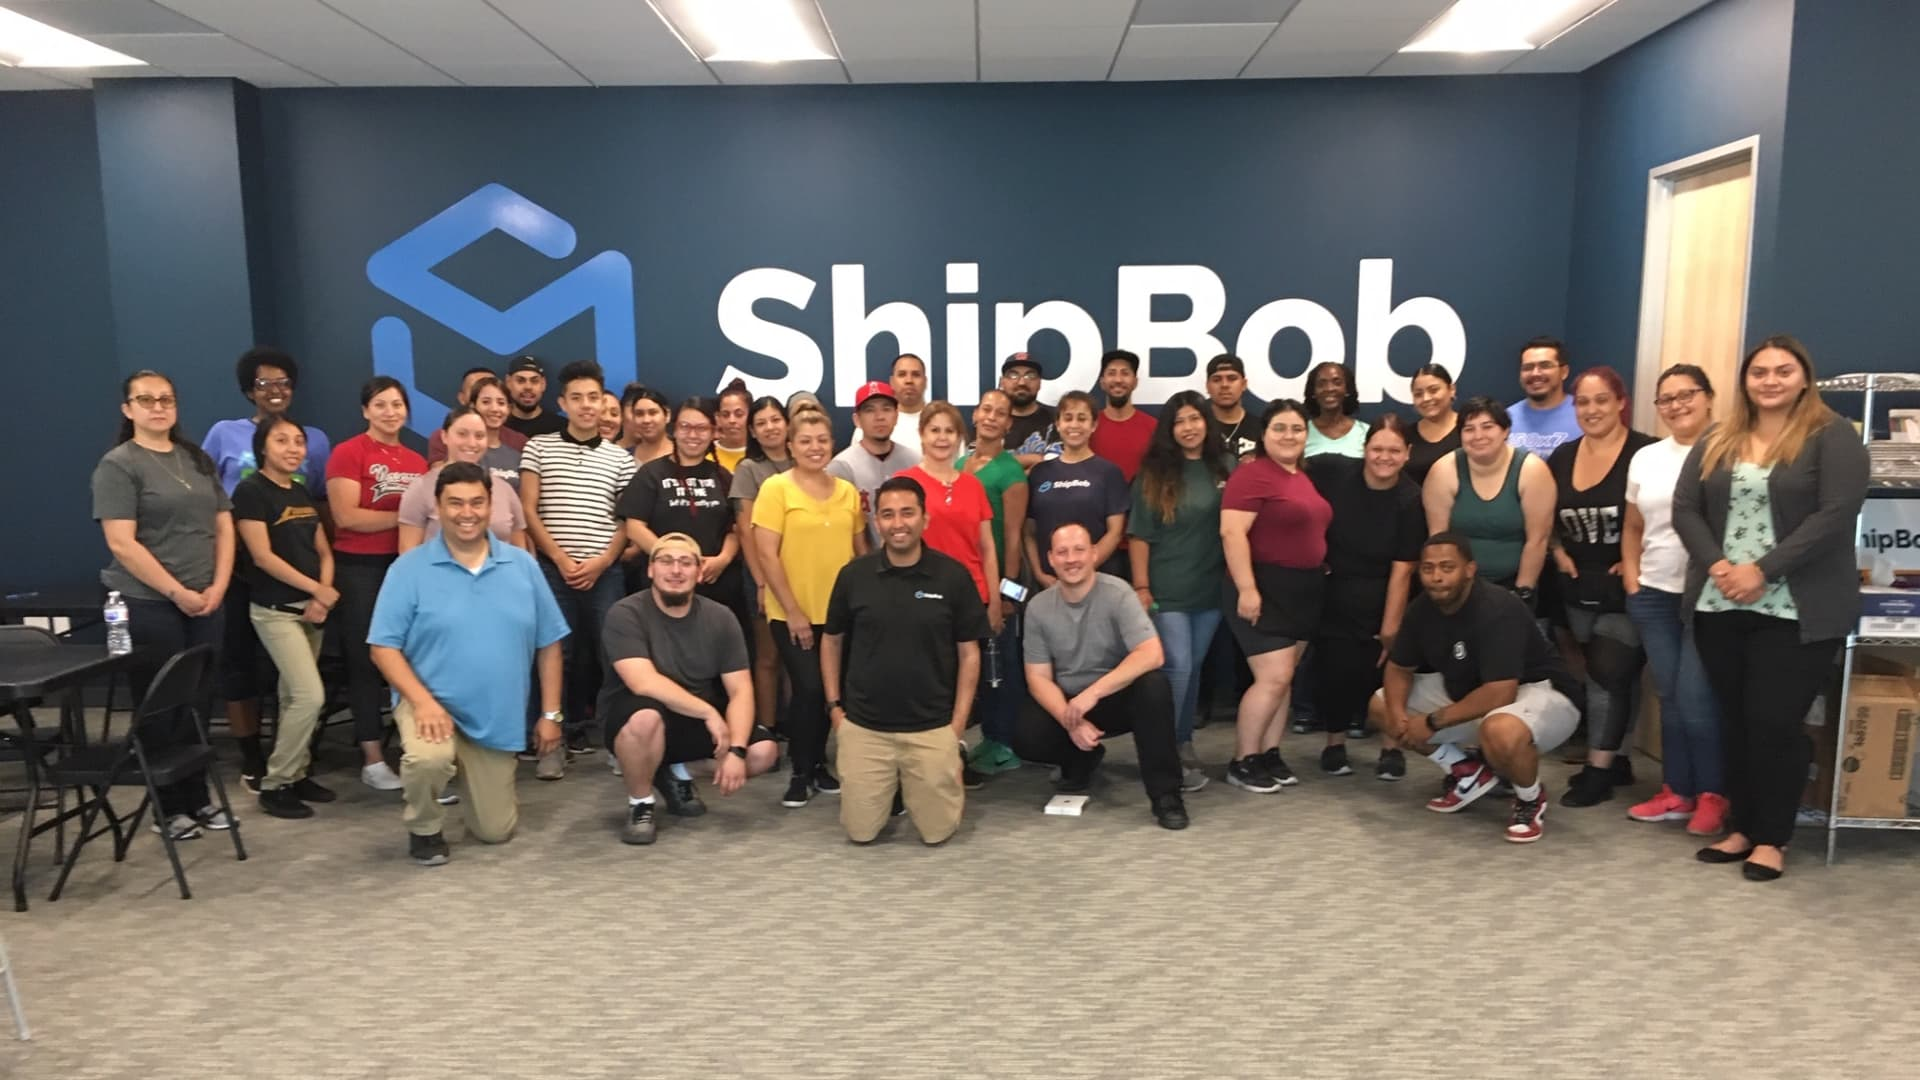 ShipBob employees with CEO Dhruv Saxena in middle